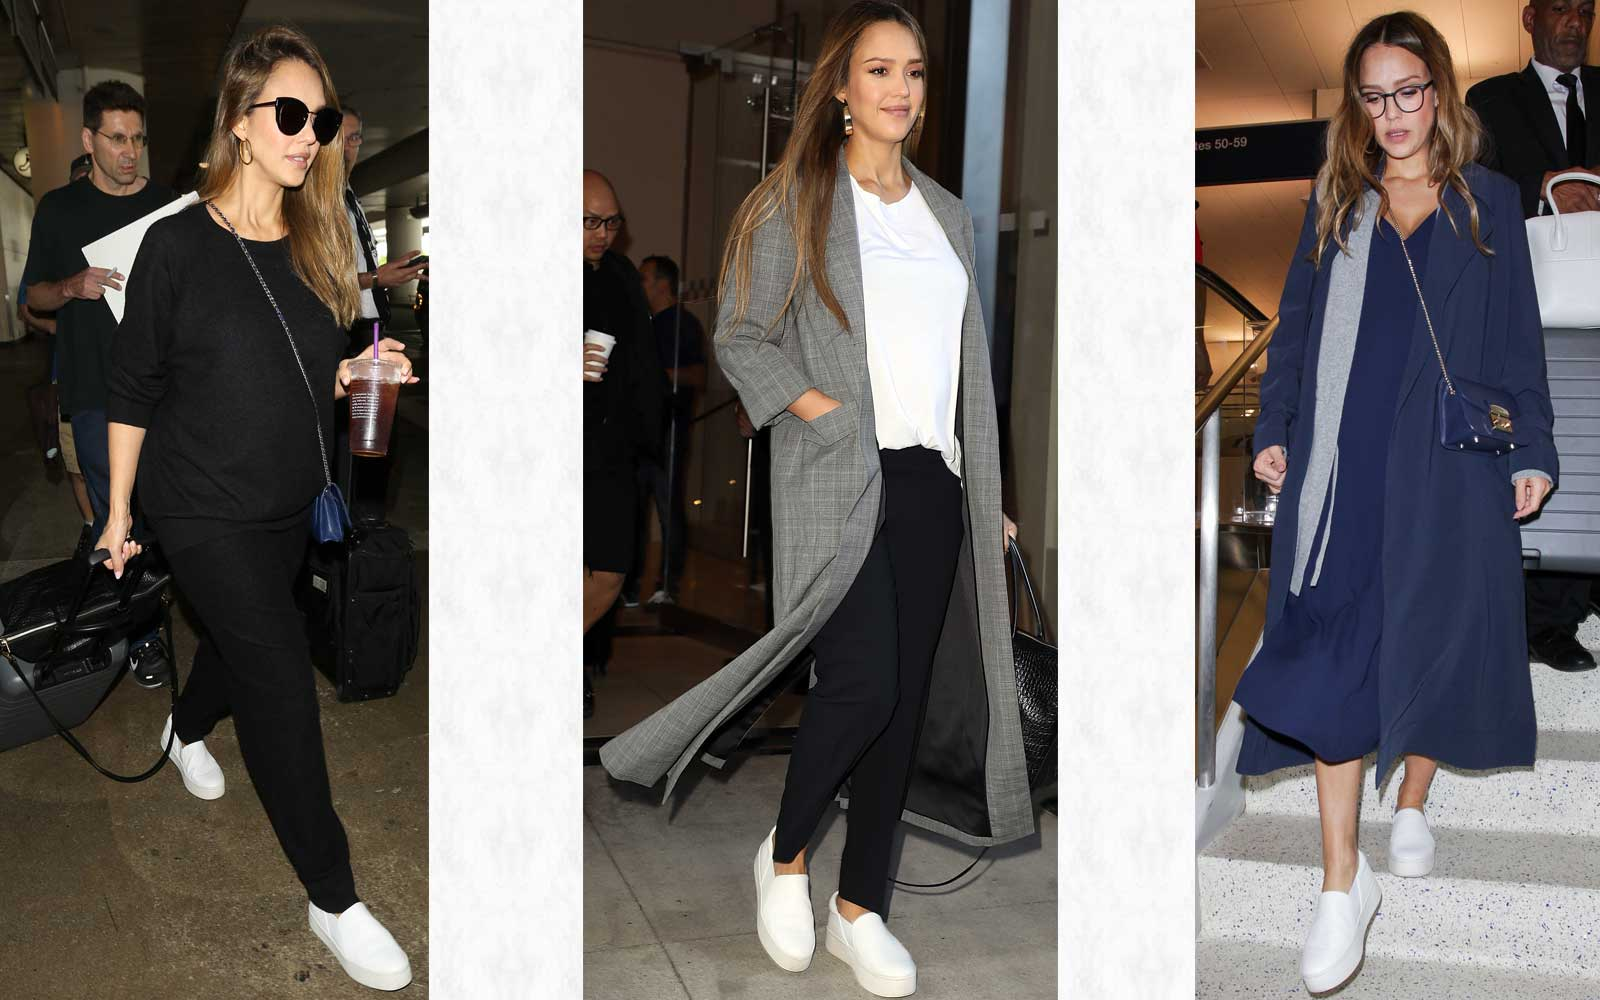 Jessica Alba Can't Stop Wearing These Slip-on Shoes to the Airport